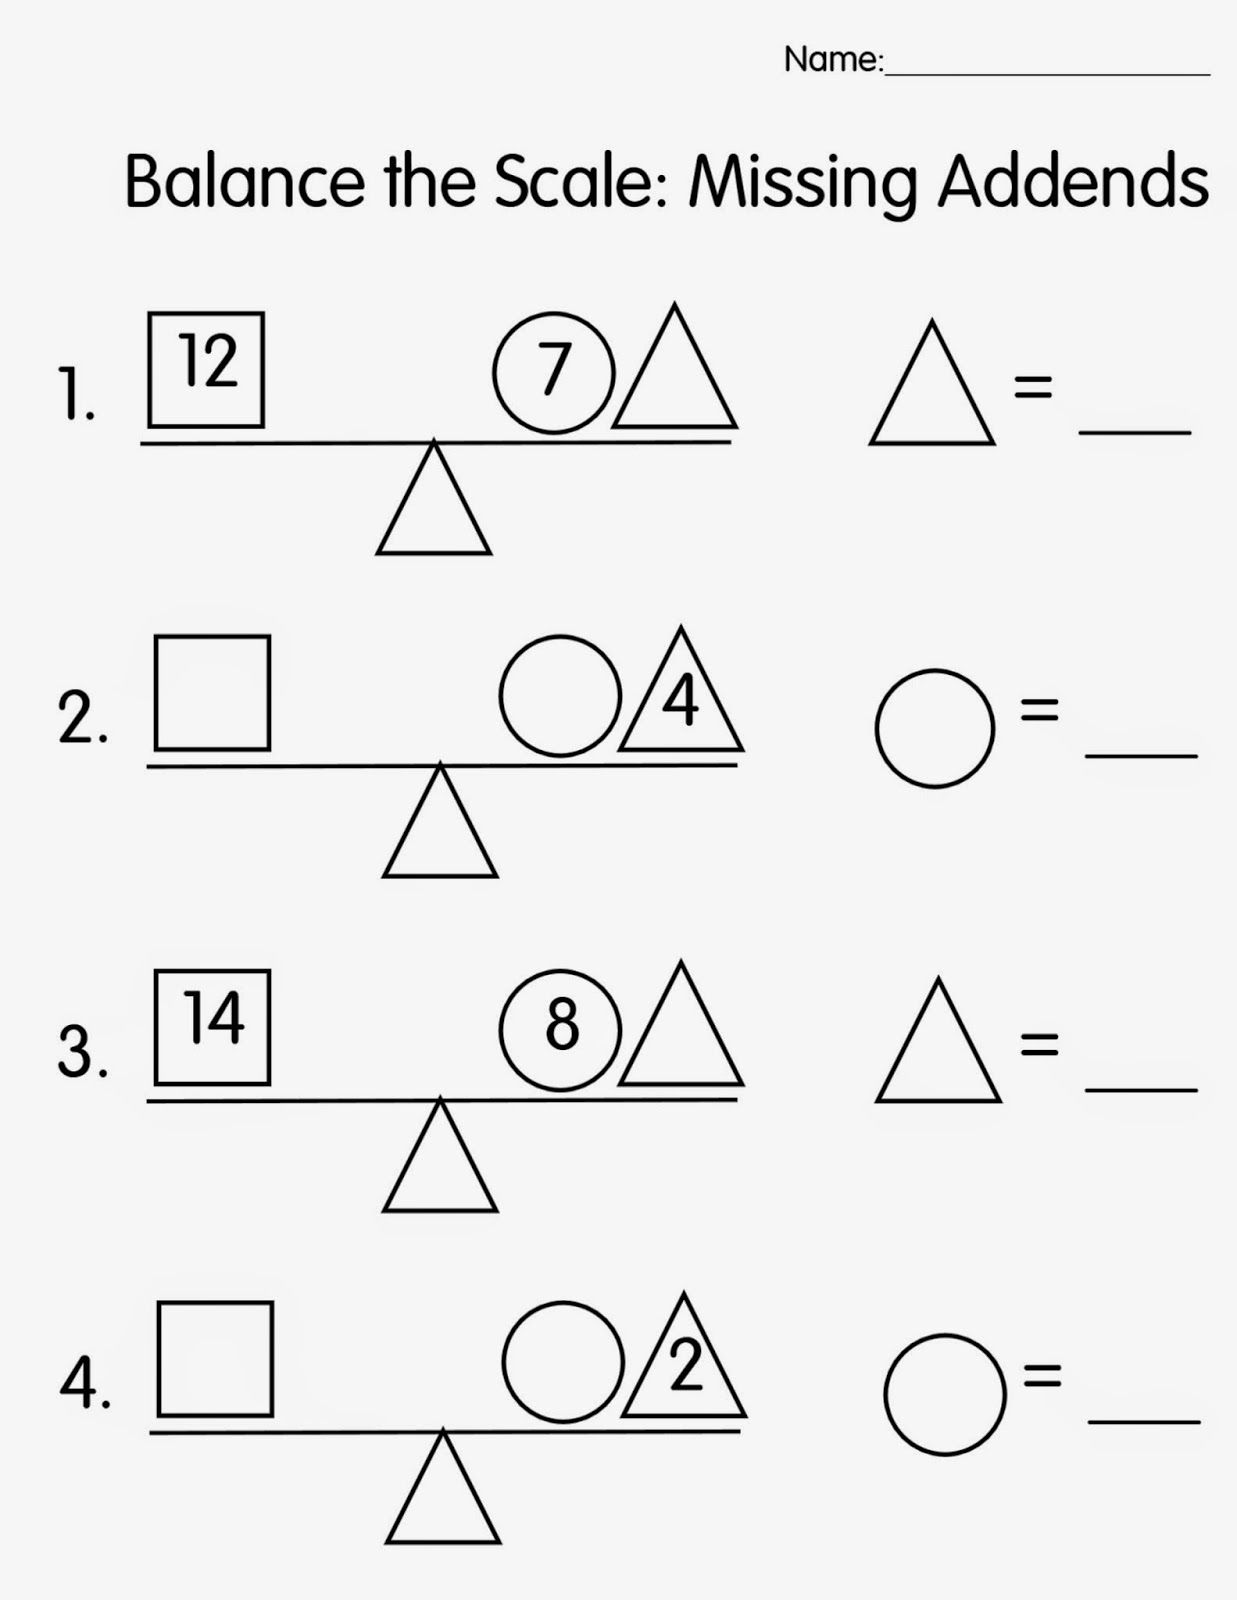 Worksheet Adding 3 Addends Worksheet first grade math unit 12 adding 3 numbers change worksheet 1 2 4 missing addend story problems out of balance ace online game